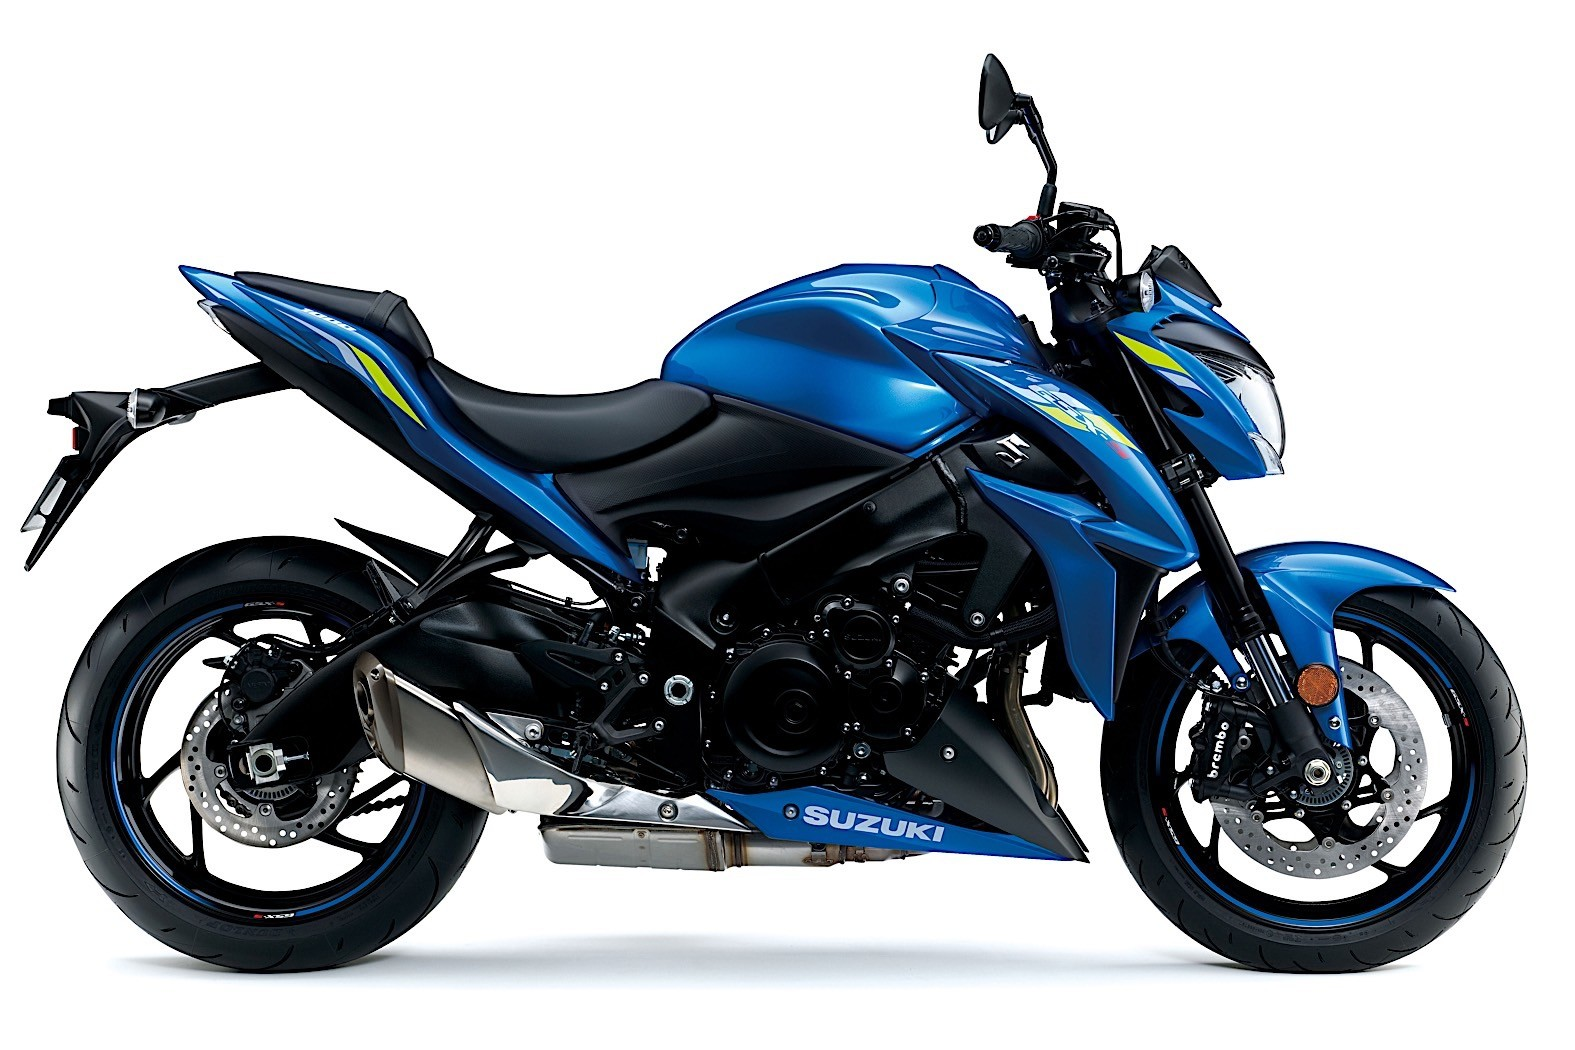 2019-suzuki-motorcycles-shine-in-new-colors-at-the-motorcycle-live-30